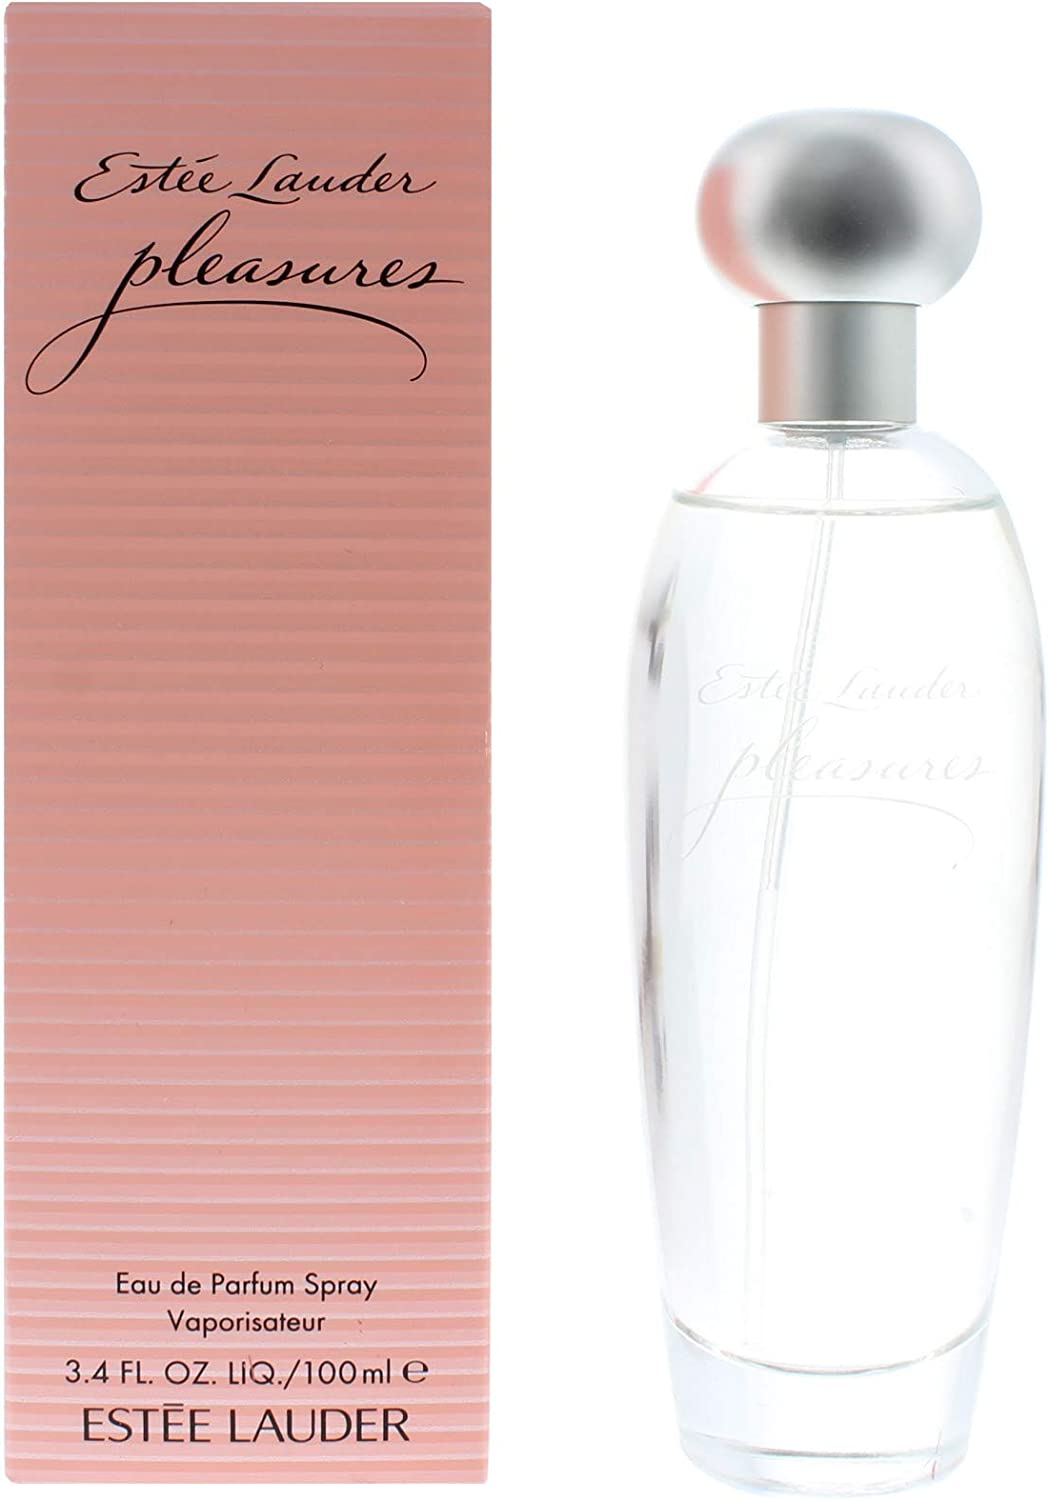 Estee Lauder Pleasures Agua de Perfume - 450 gr, 100 ml: Amazon.es